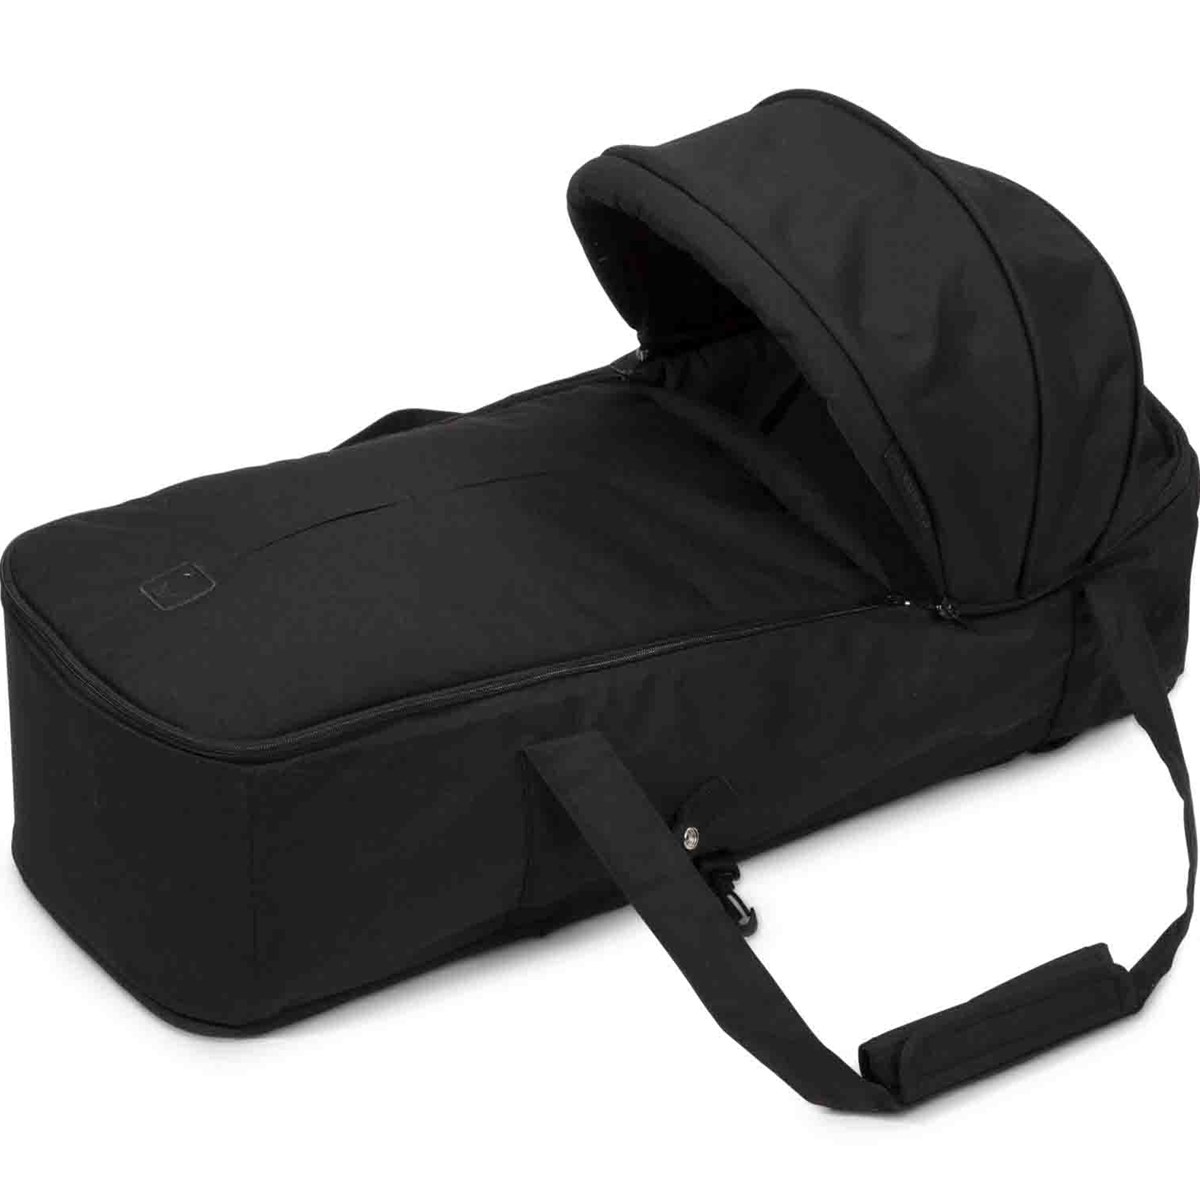 ith soft silic carry - HD1200×1200